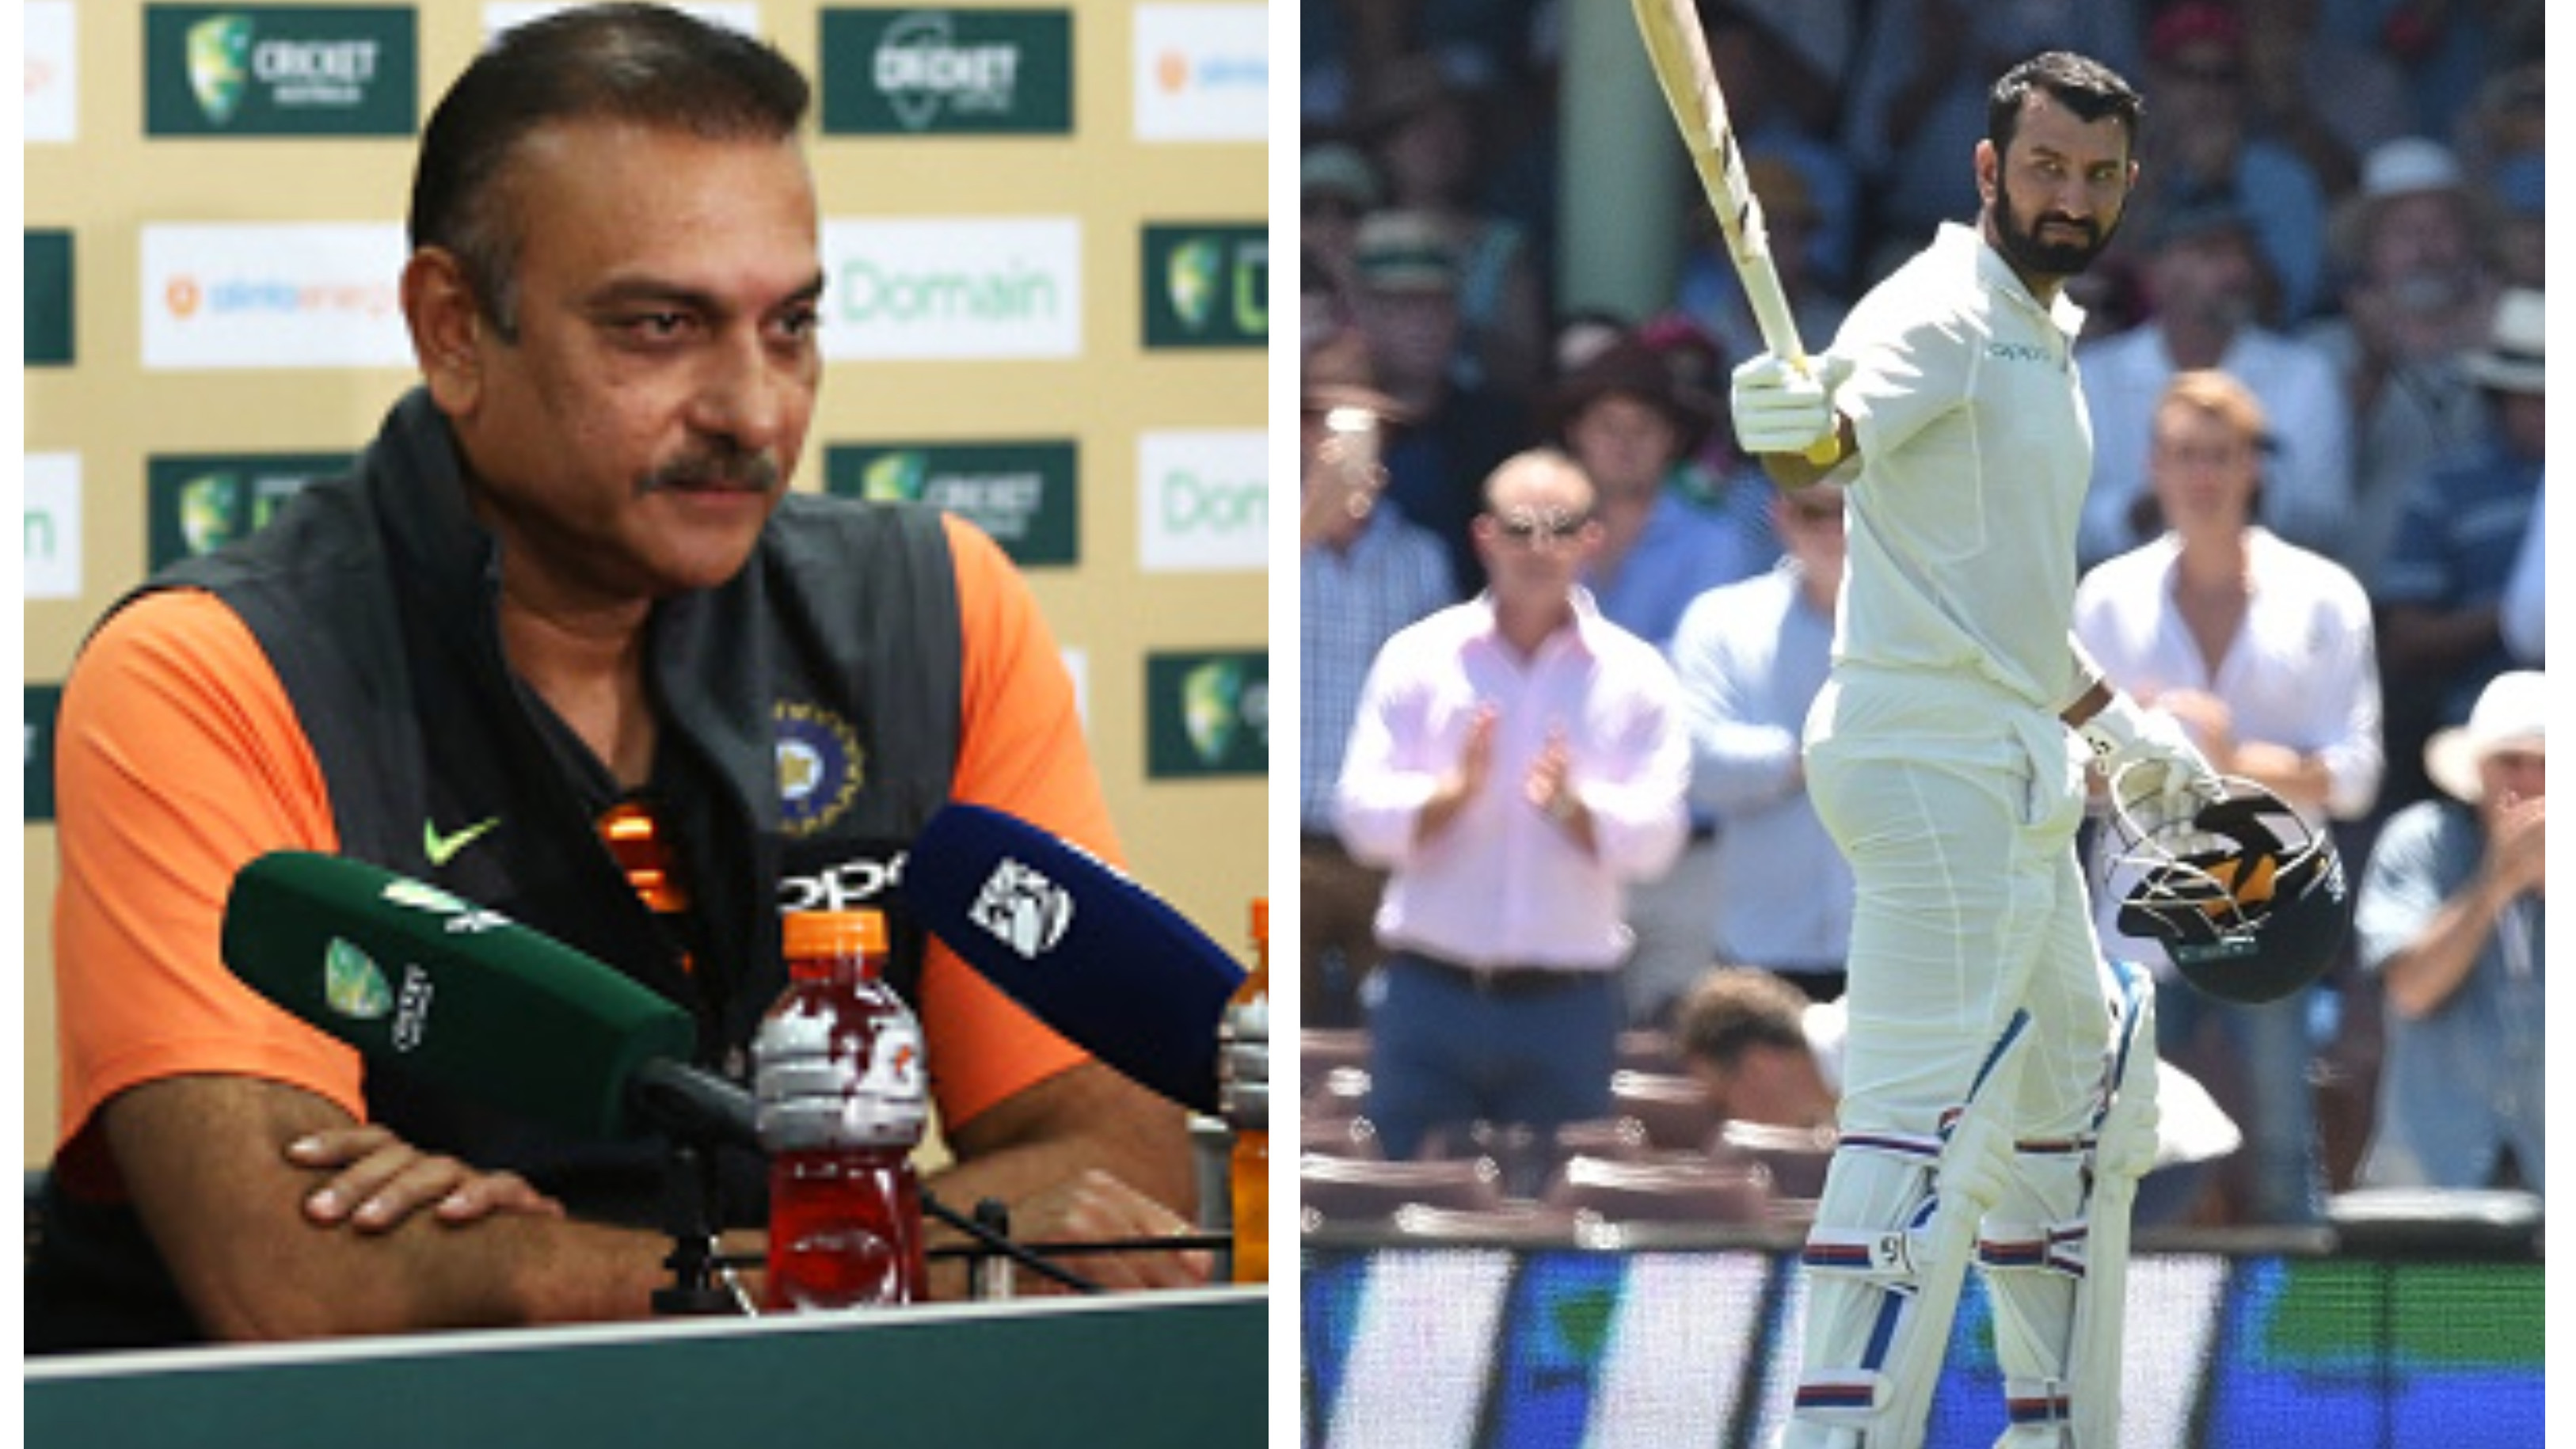 AUS v IND 2018-19: Shastri hails Pujara for his stellar batting effort down under